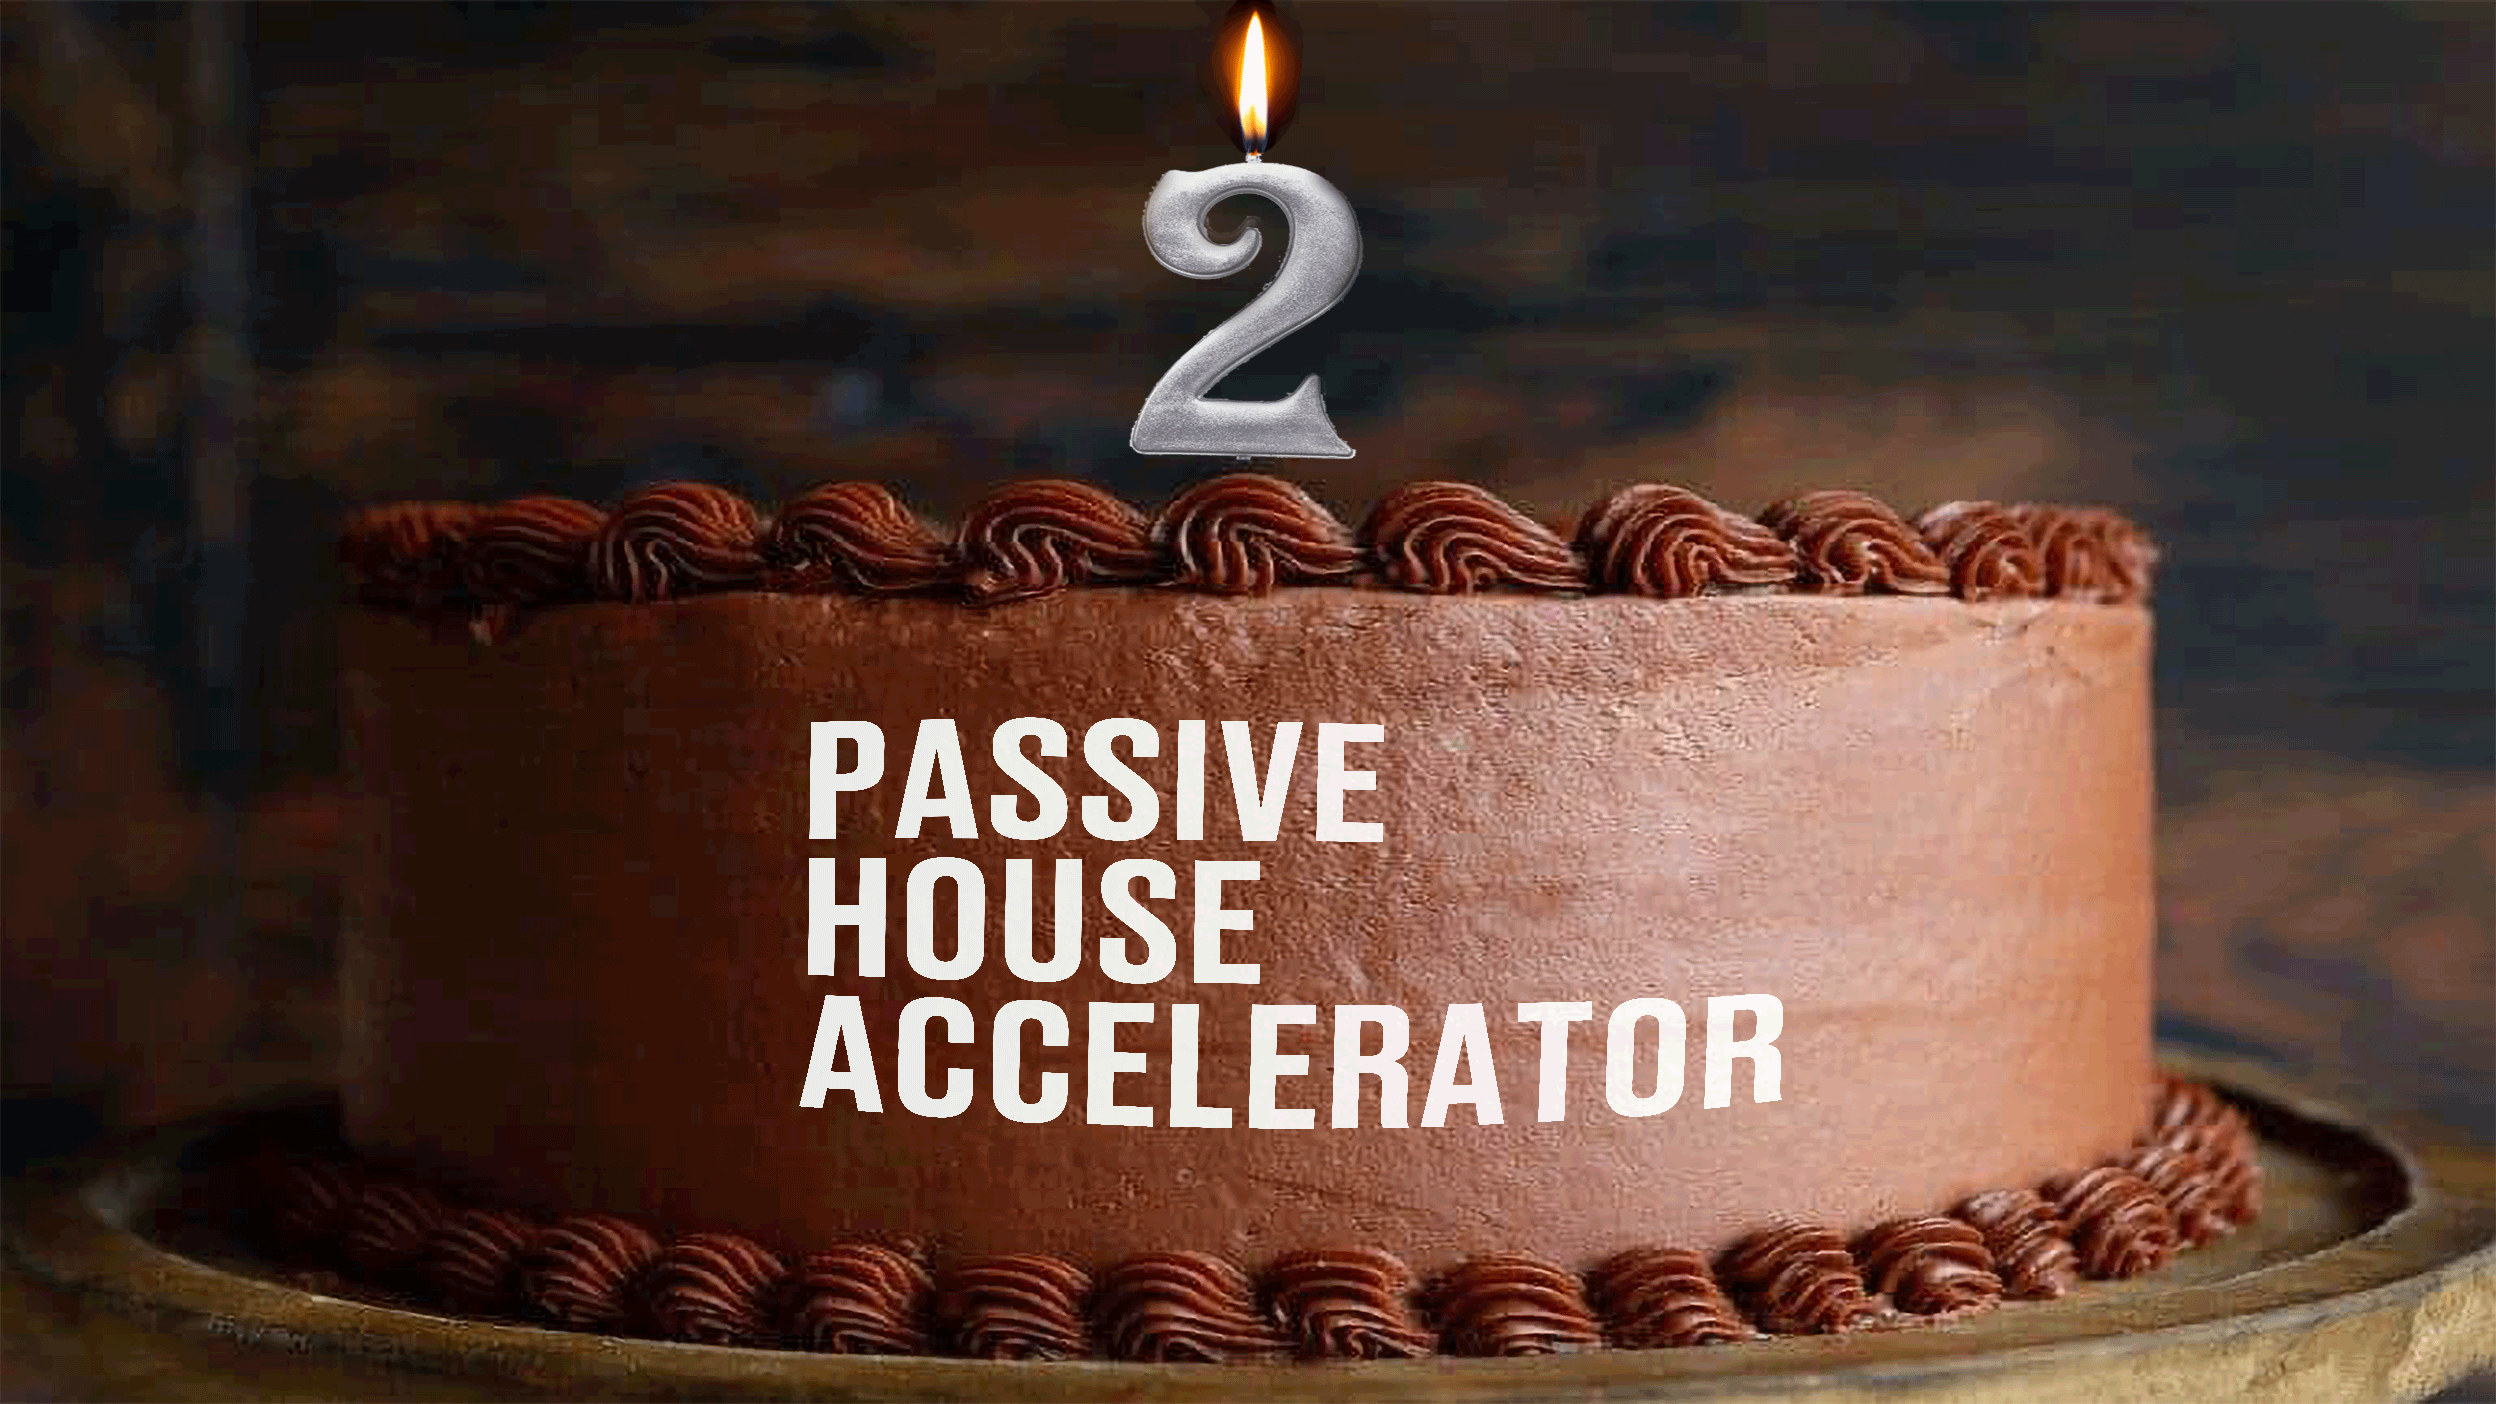 Two Years in at Passive House Accelerator, by Zack Semke and Michael Ingui